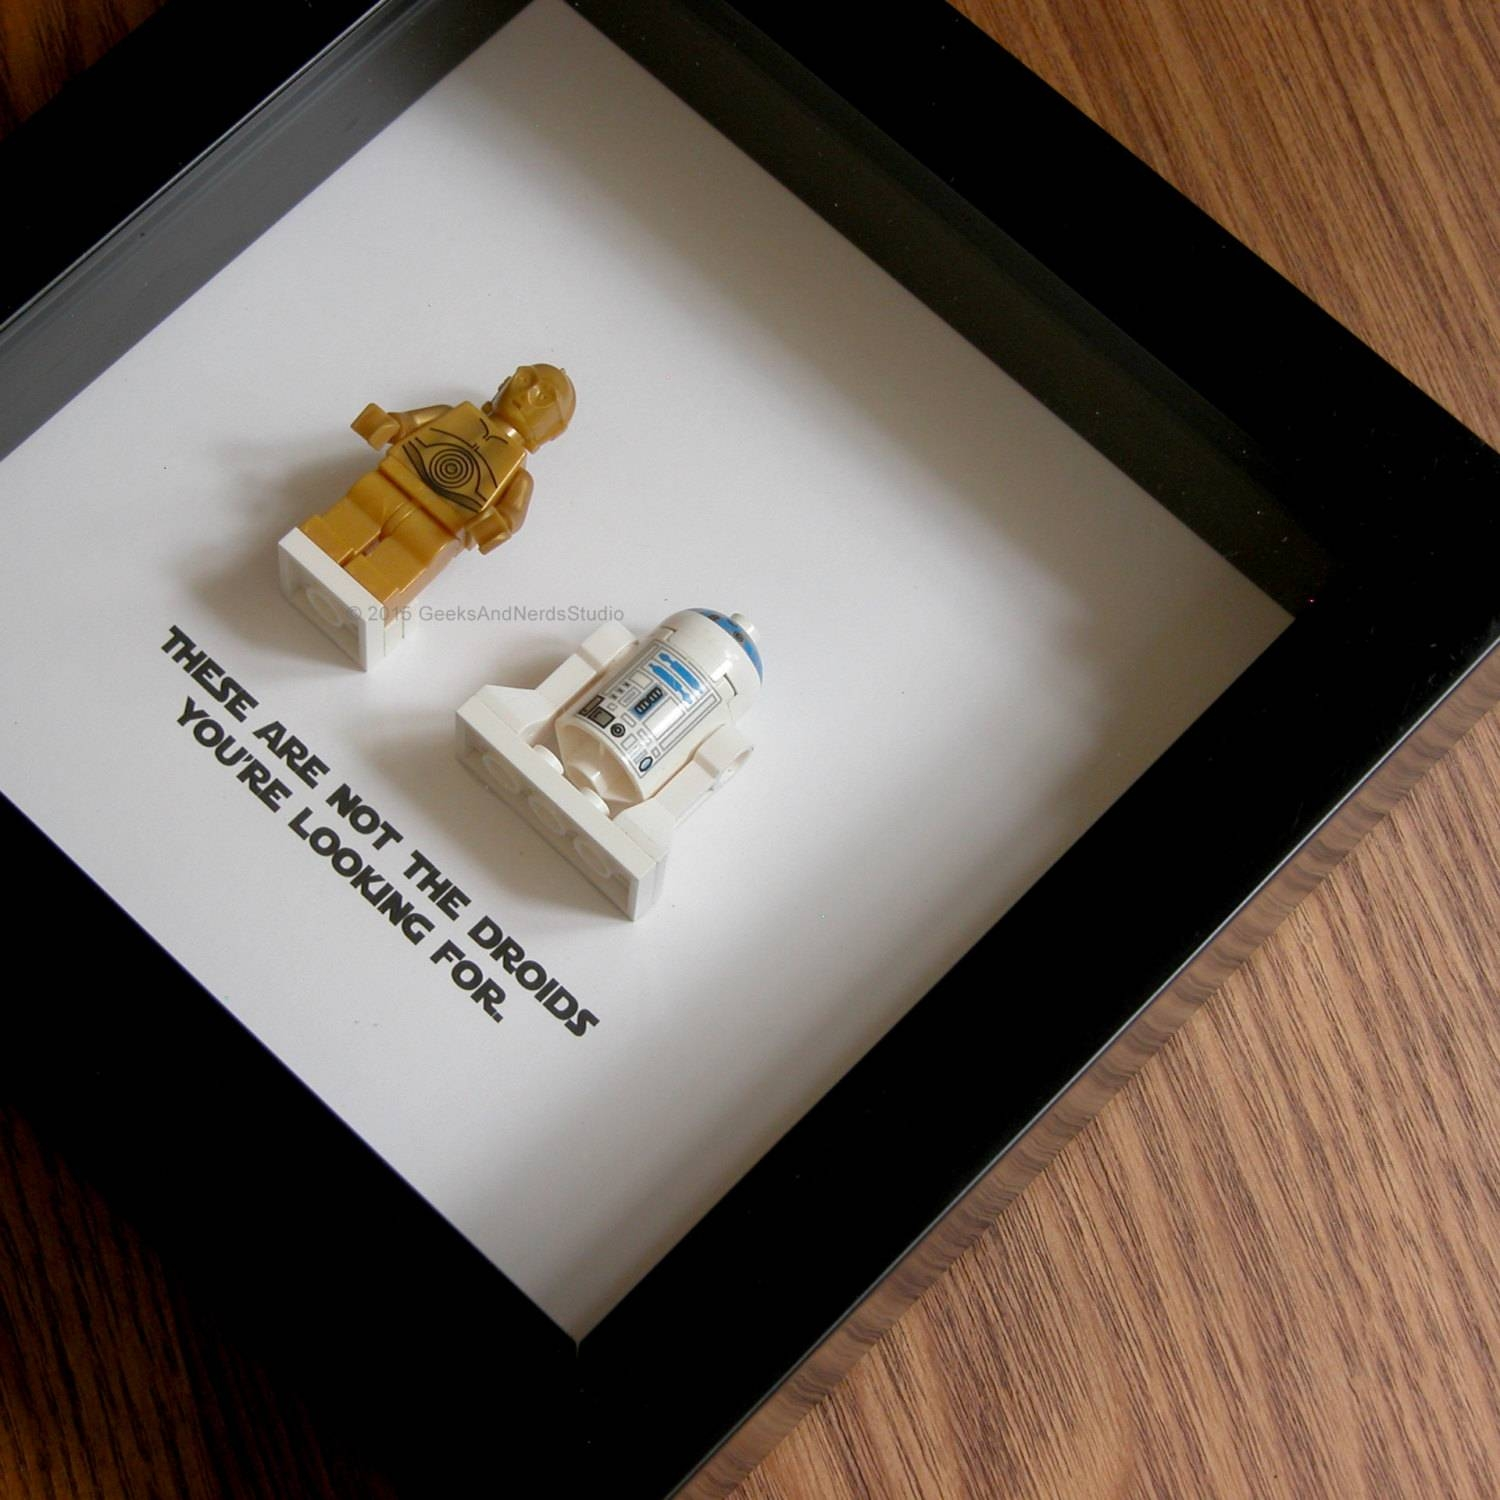 Star Wars Art Lego R2D2 And C3Po Wedding Gift Wall Decor Inside Current Lego Star Wars Wall Art (View 17 of 20)